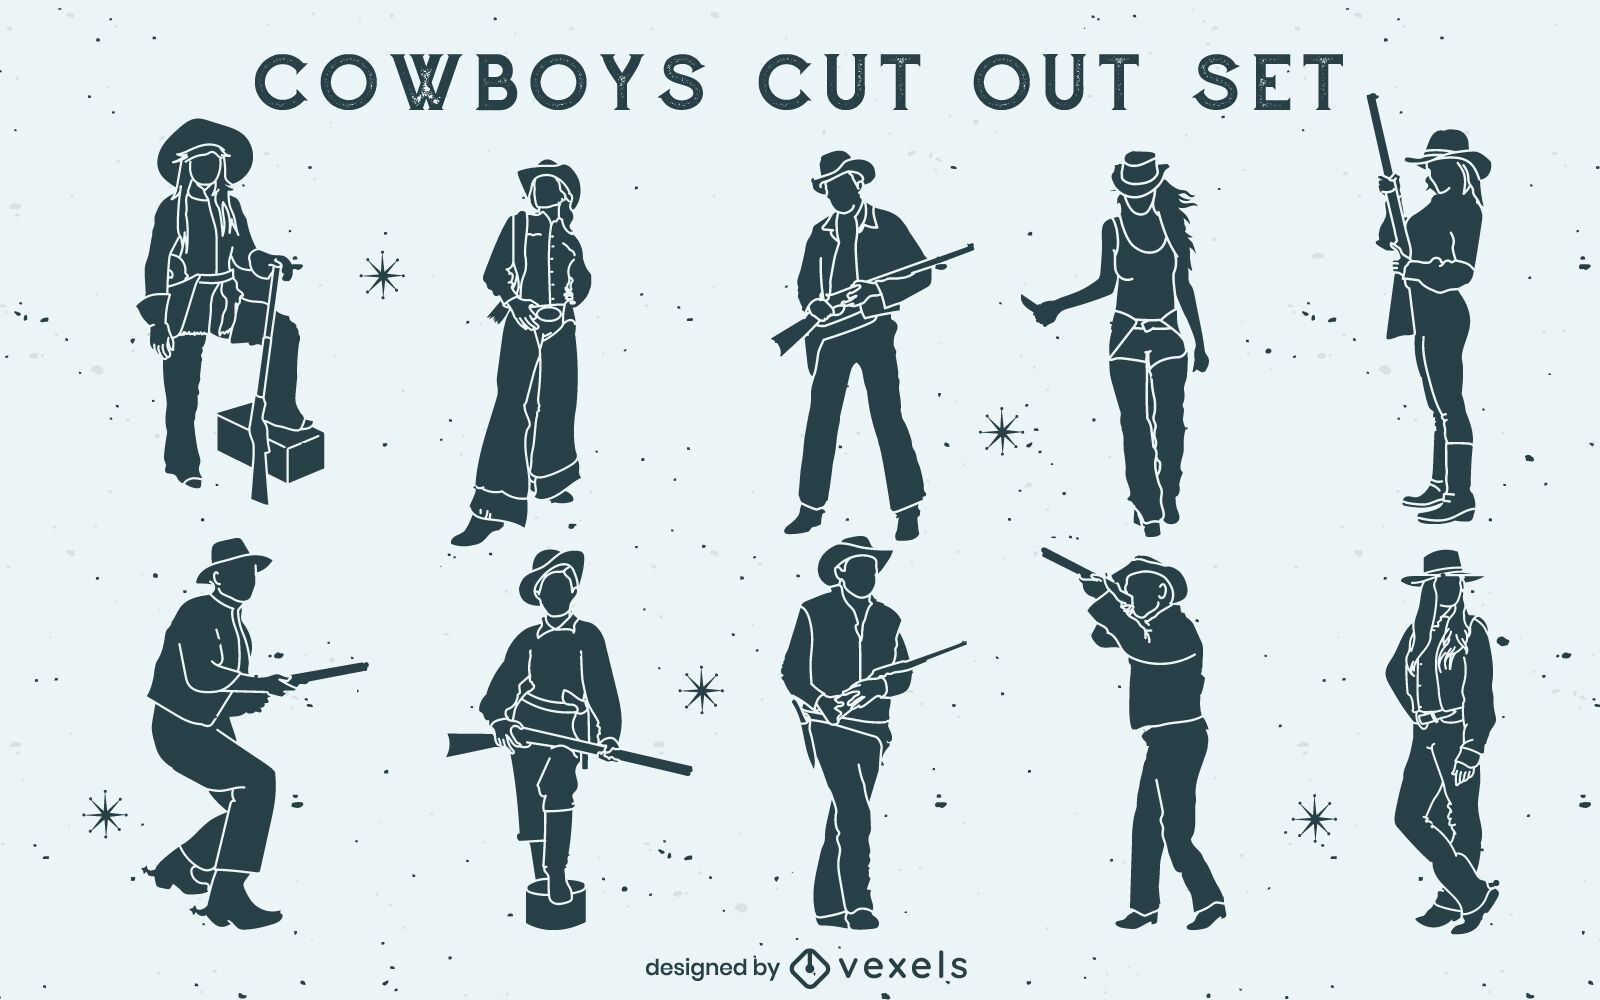 Cowboys and cowgirls with guns set cut out